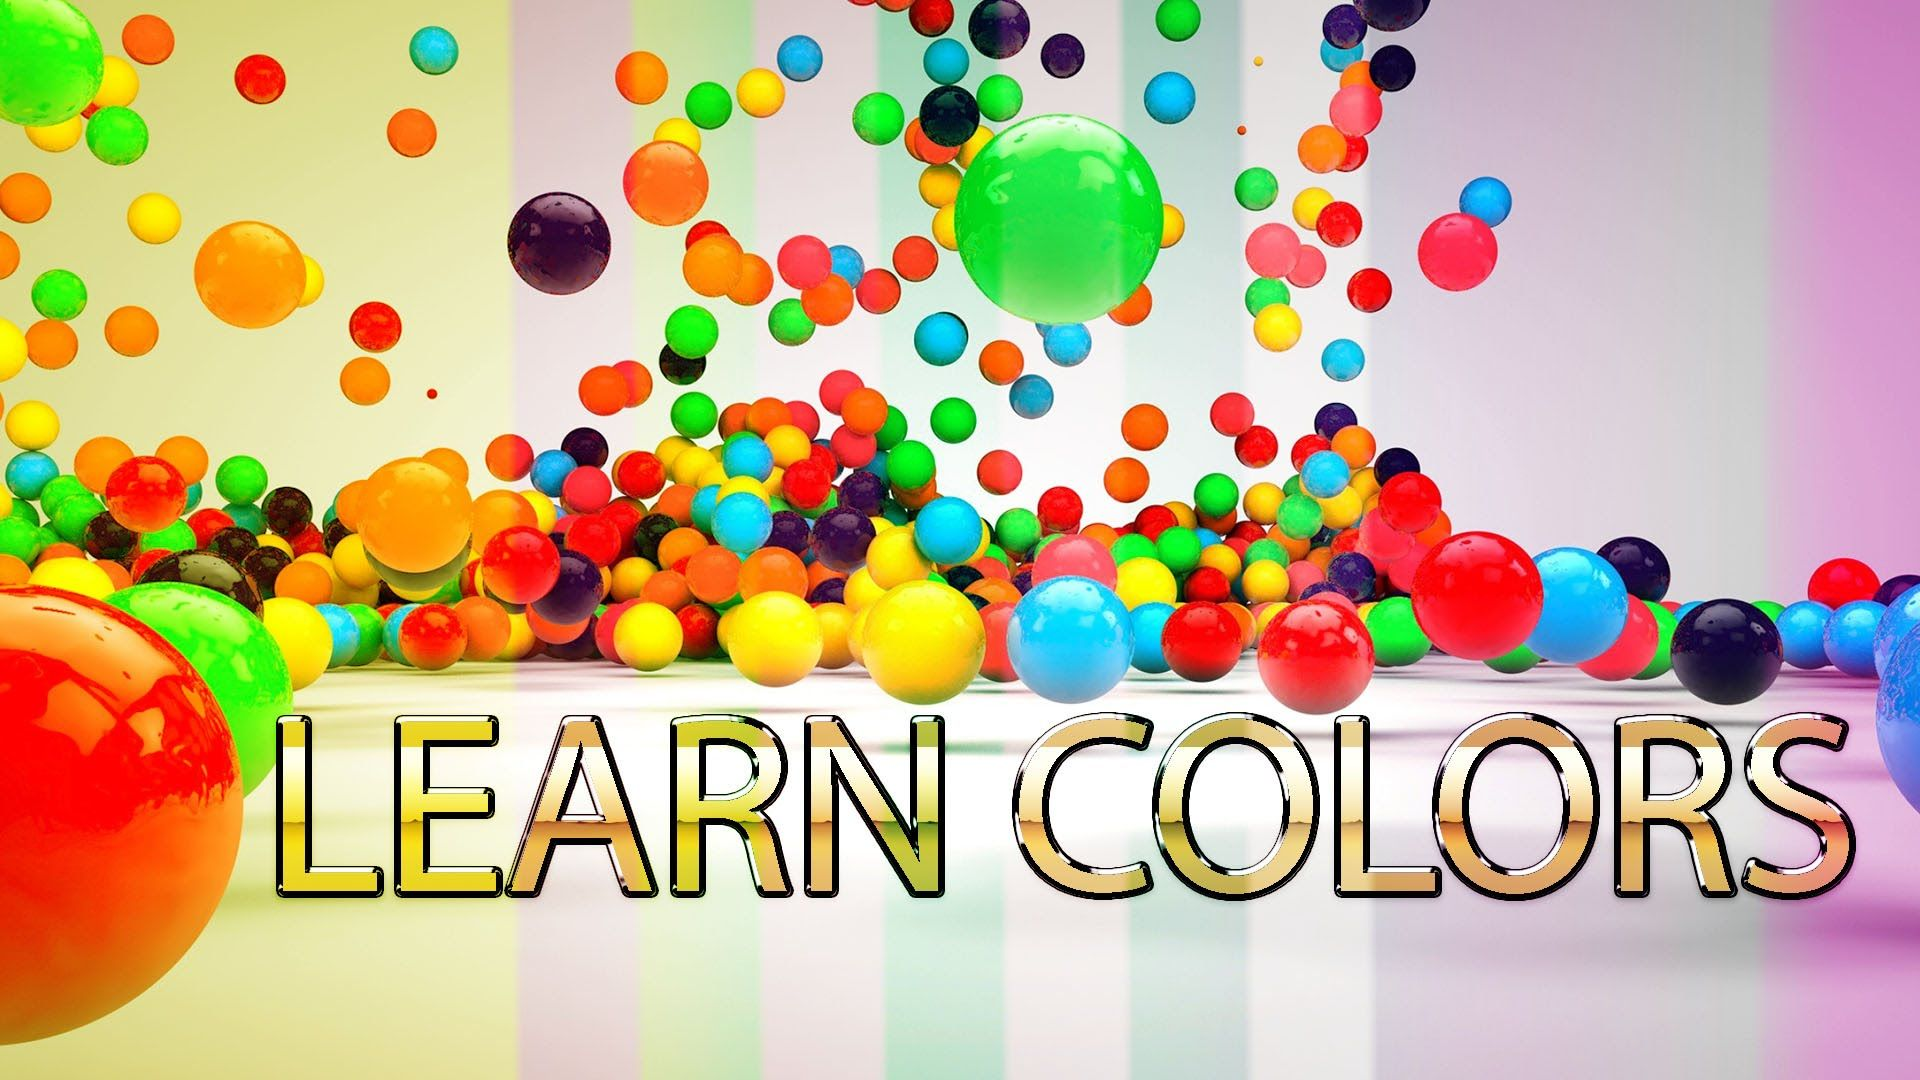 Learn Colors Like Red Blue Green Yellow Orange For